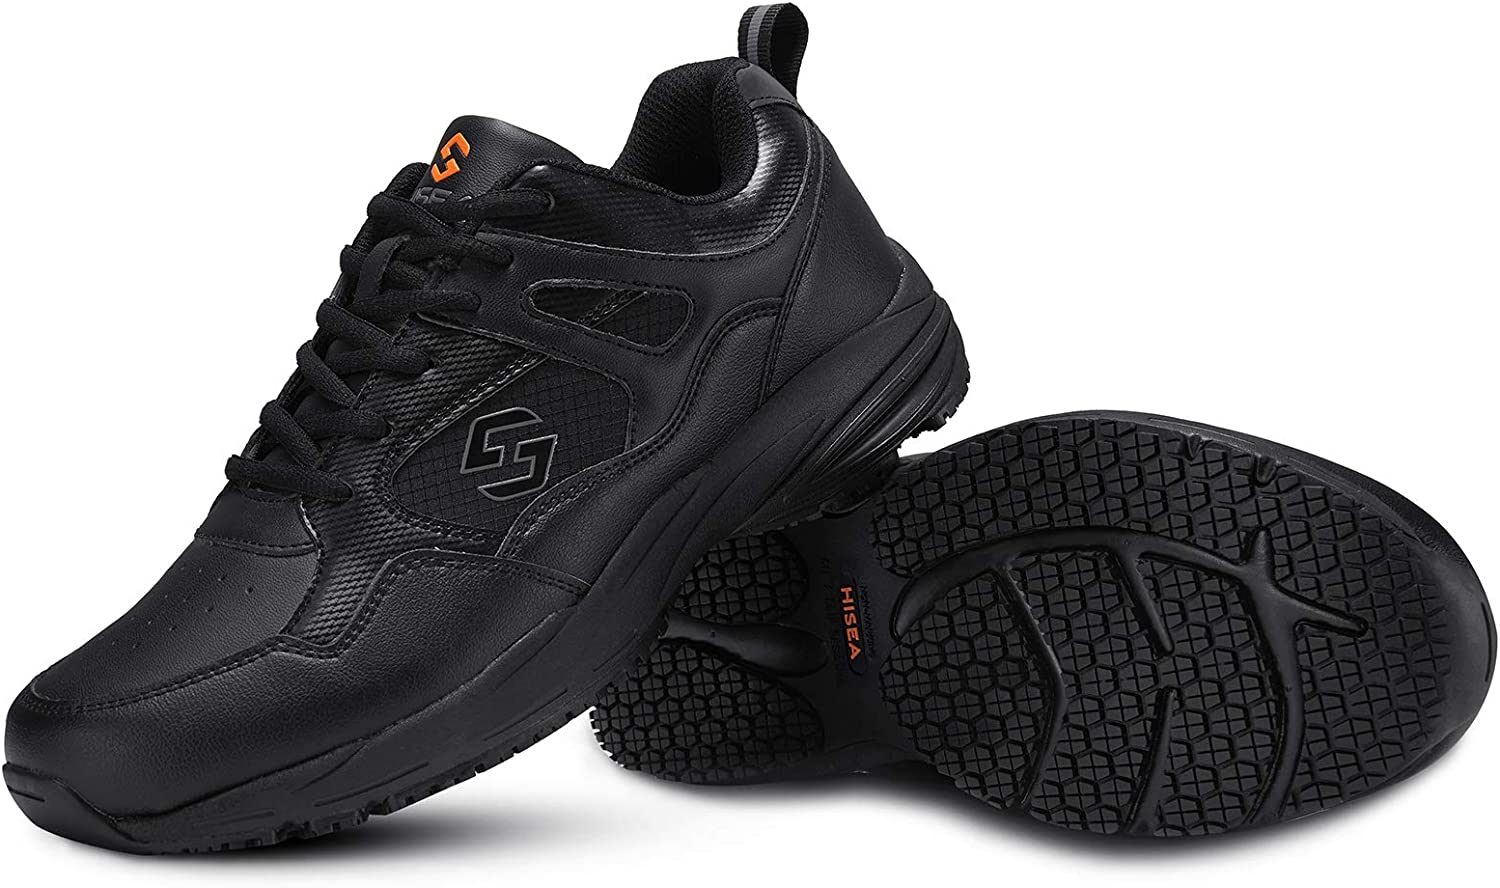 HISEA Non Slip Shoes for Men Work Shoes Lightweight Food Service Shoes Comfortable Chef Shoes Water Resistant